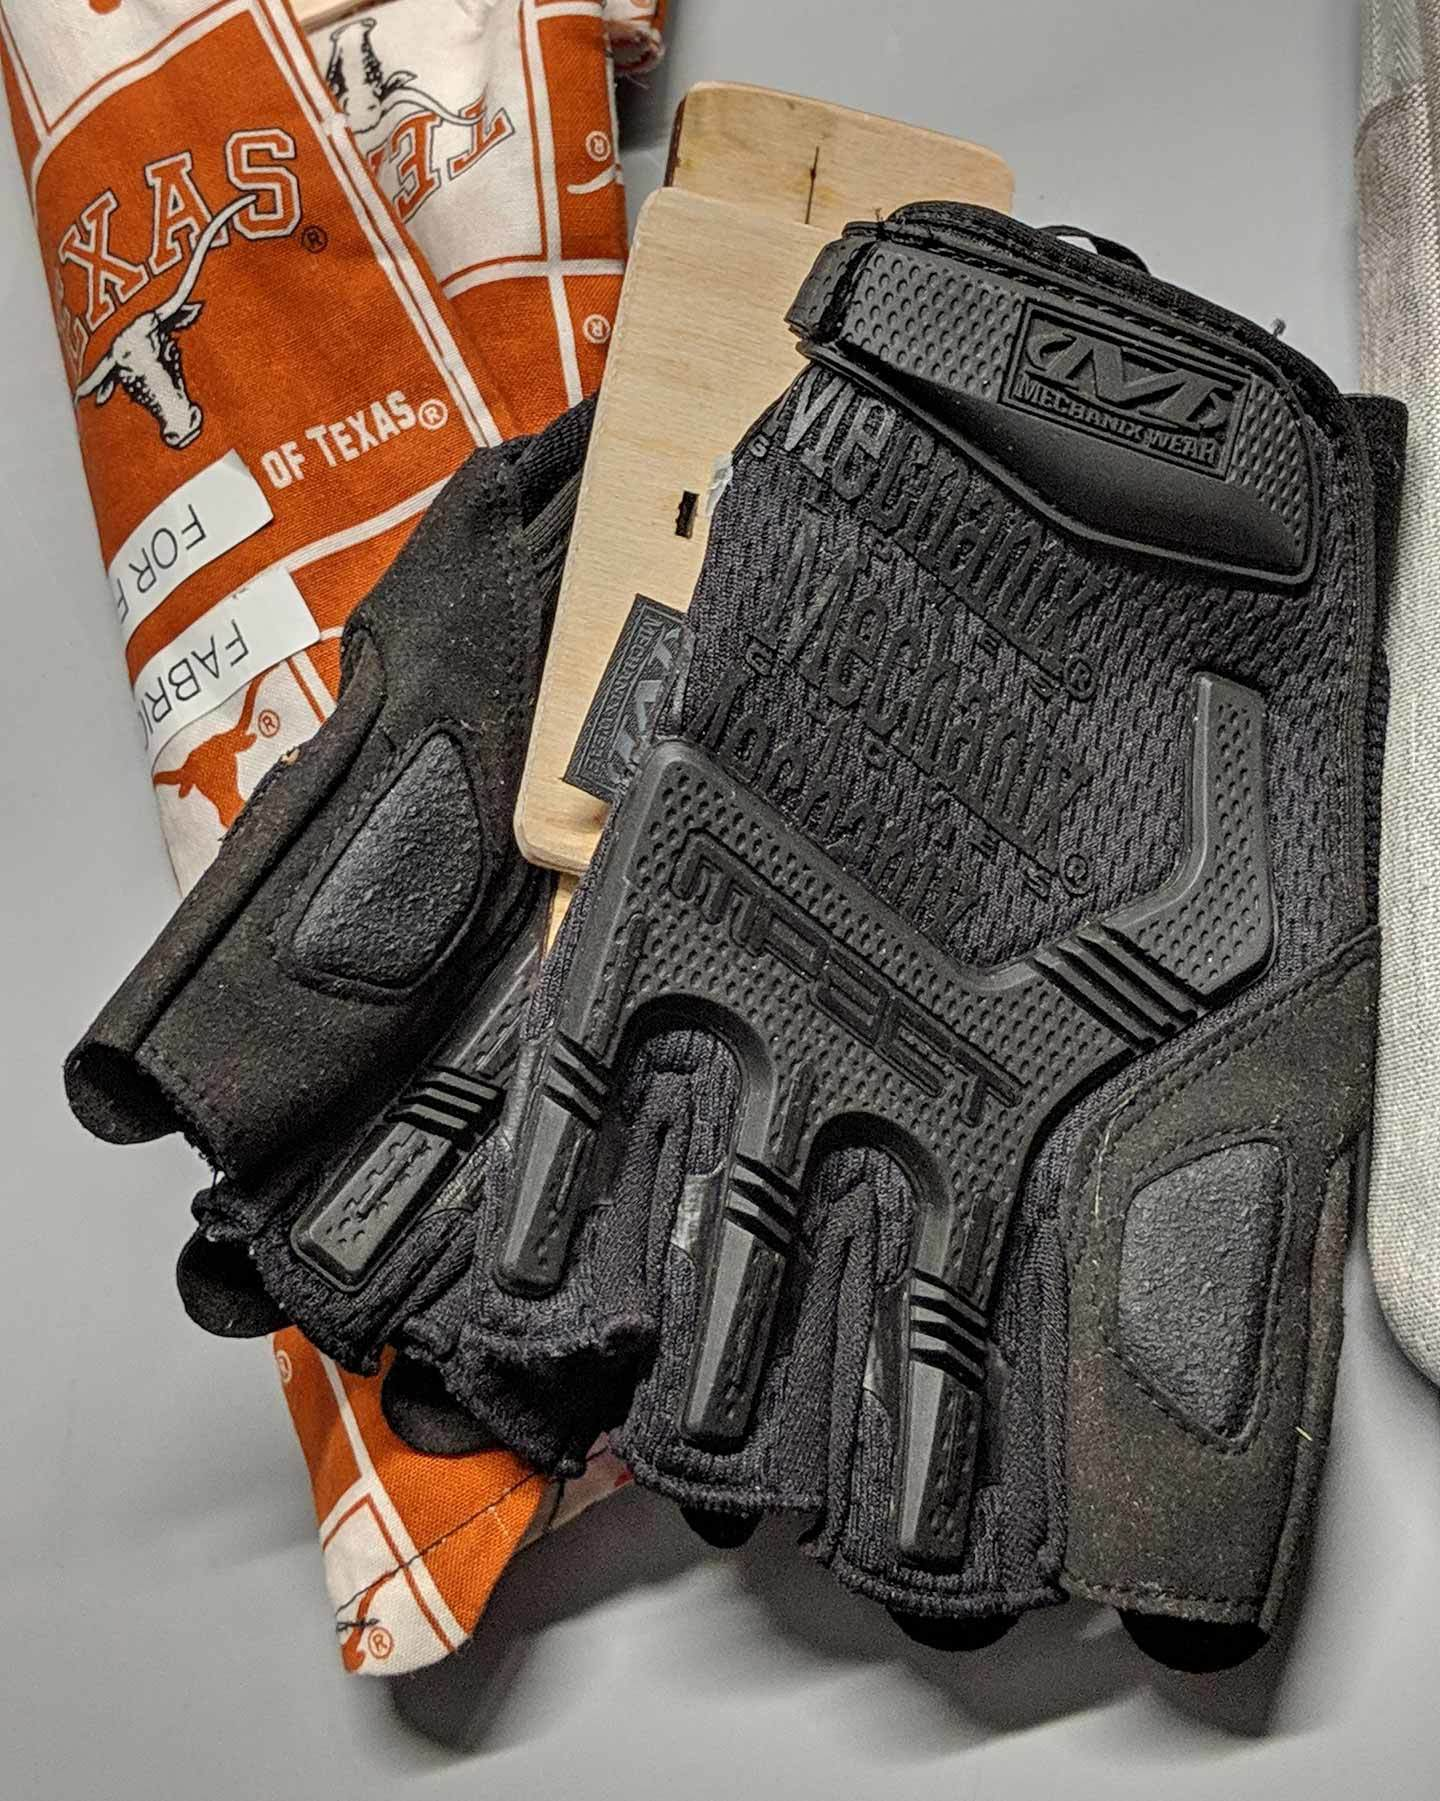 A prototype of gloves to make operating a wheelchair easier.